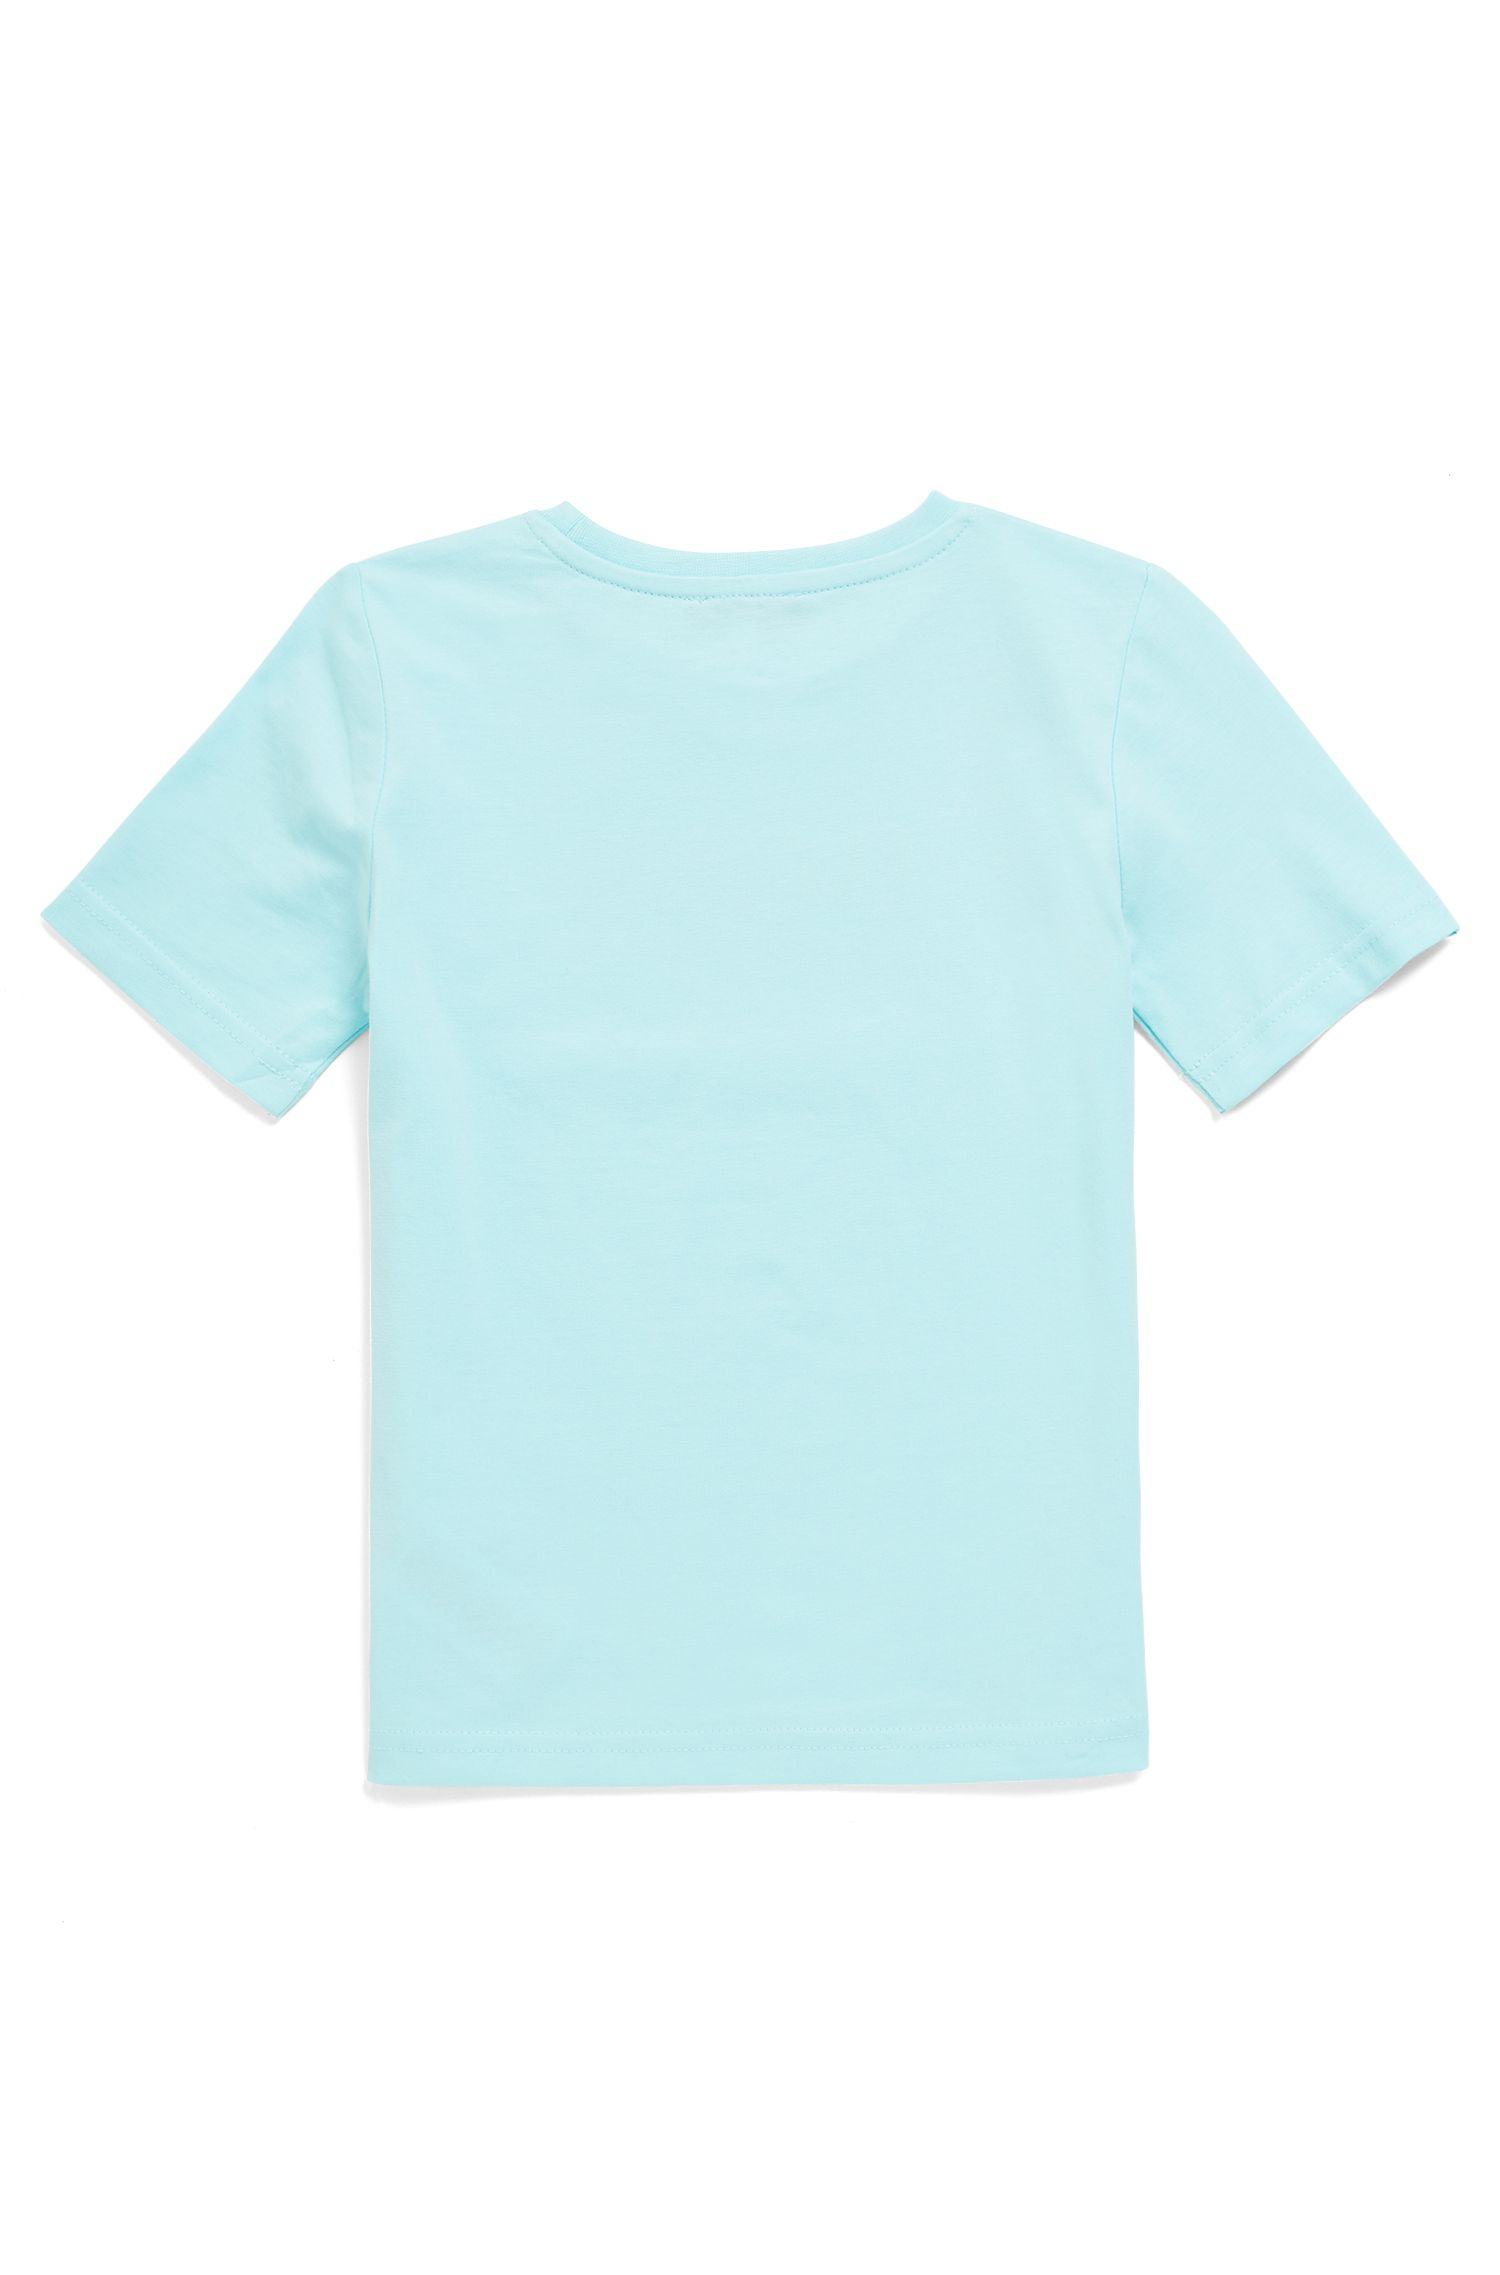 Kids' short-sleeved T-shirt in cotton with logo print, Light Blue